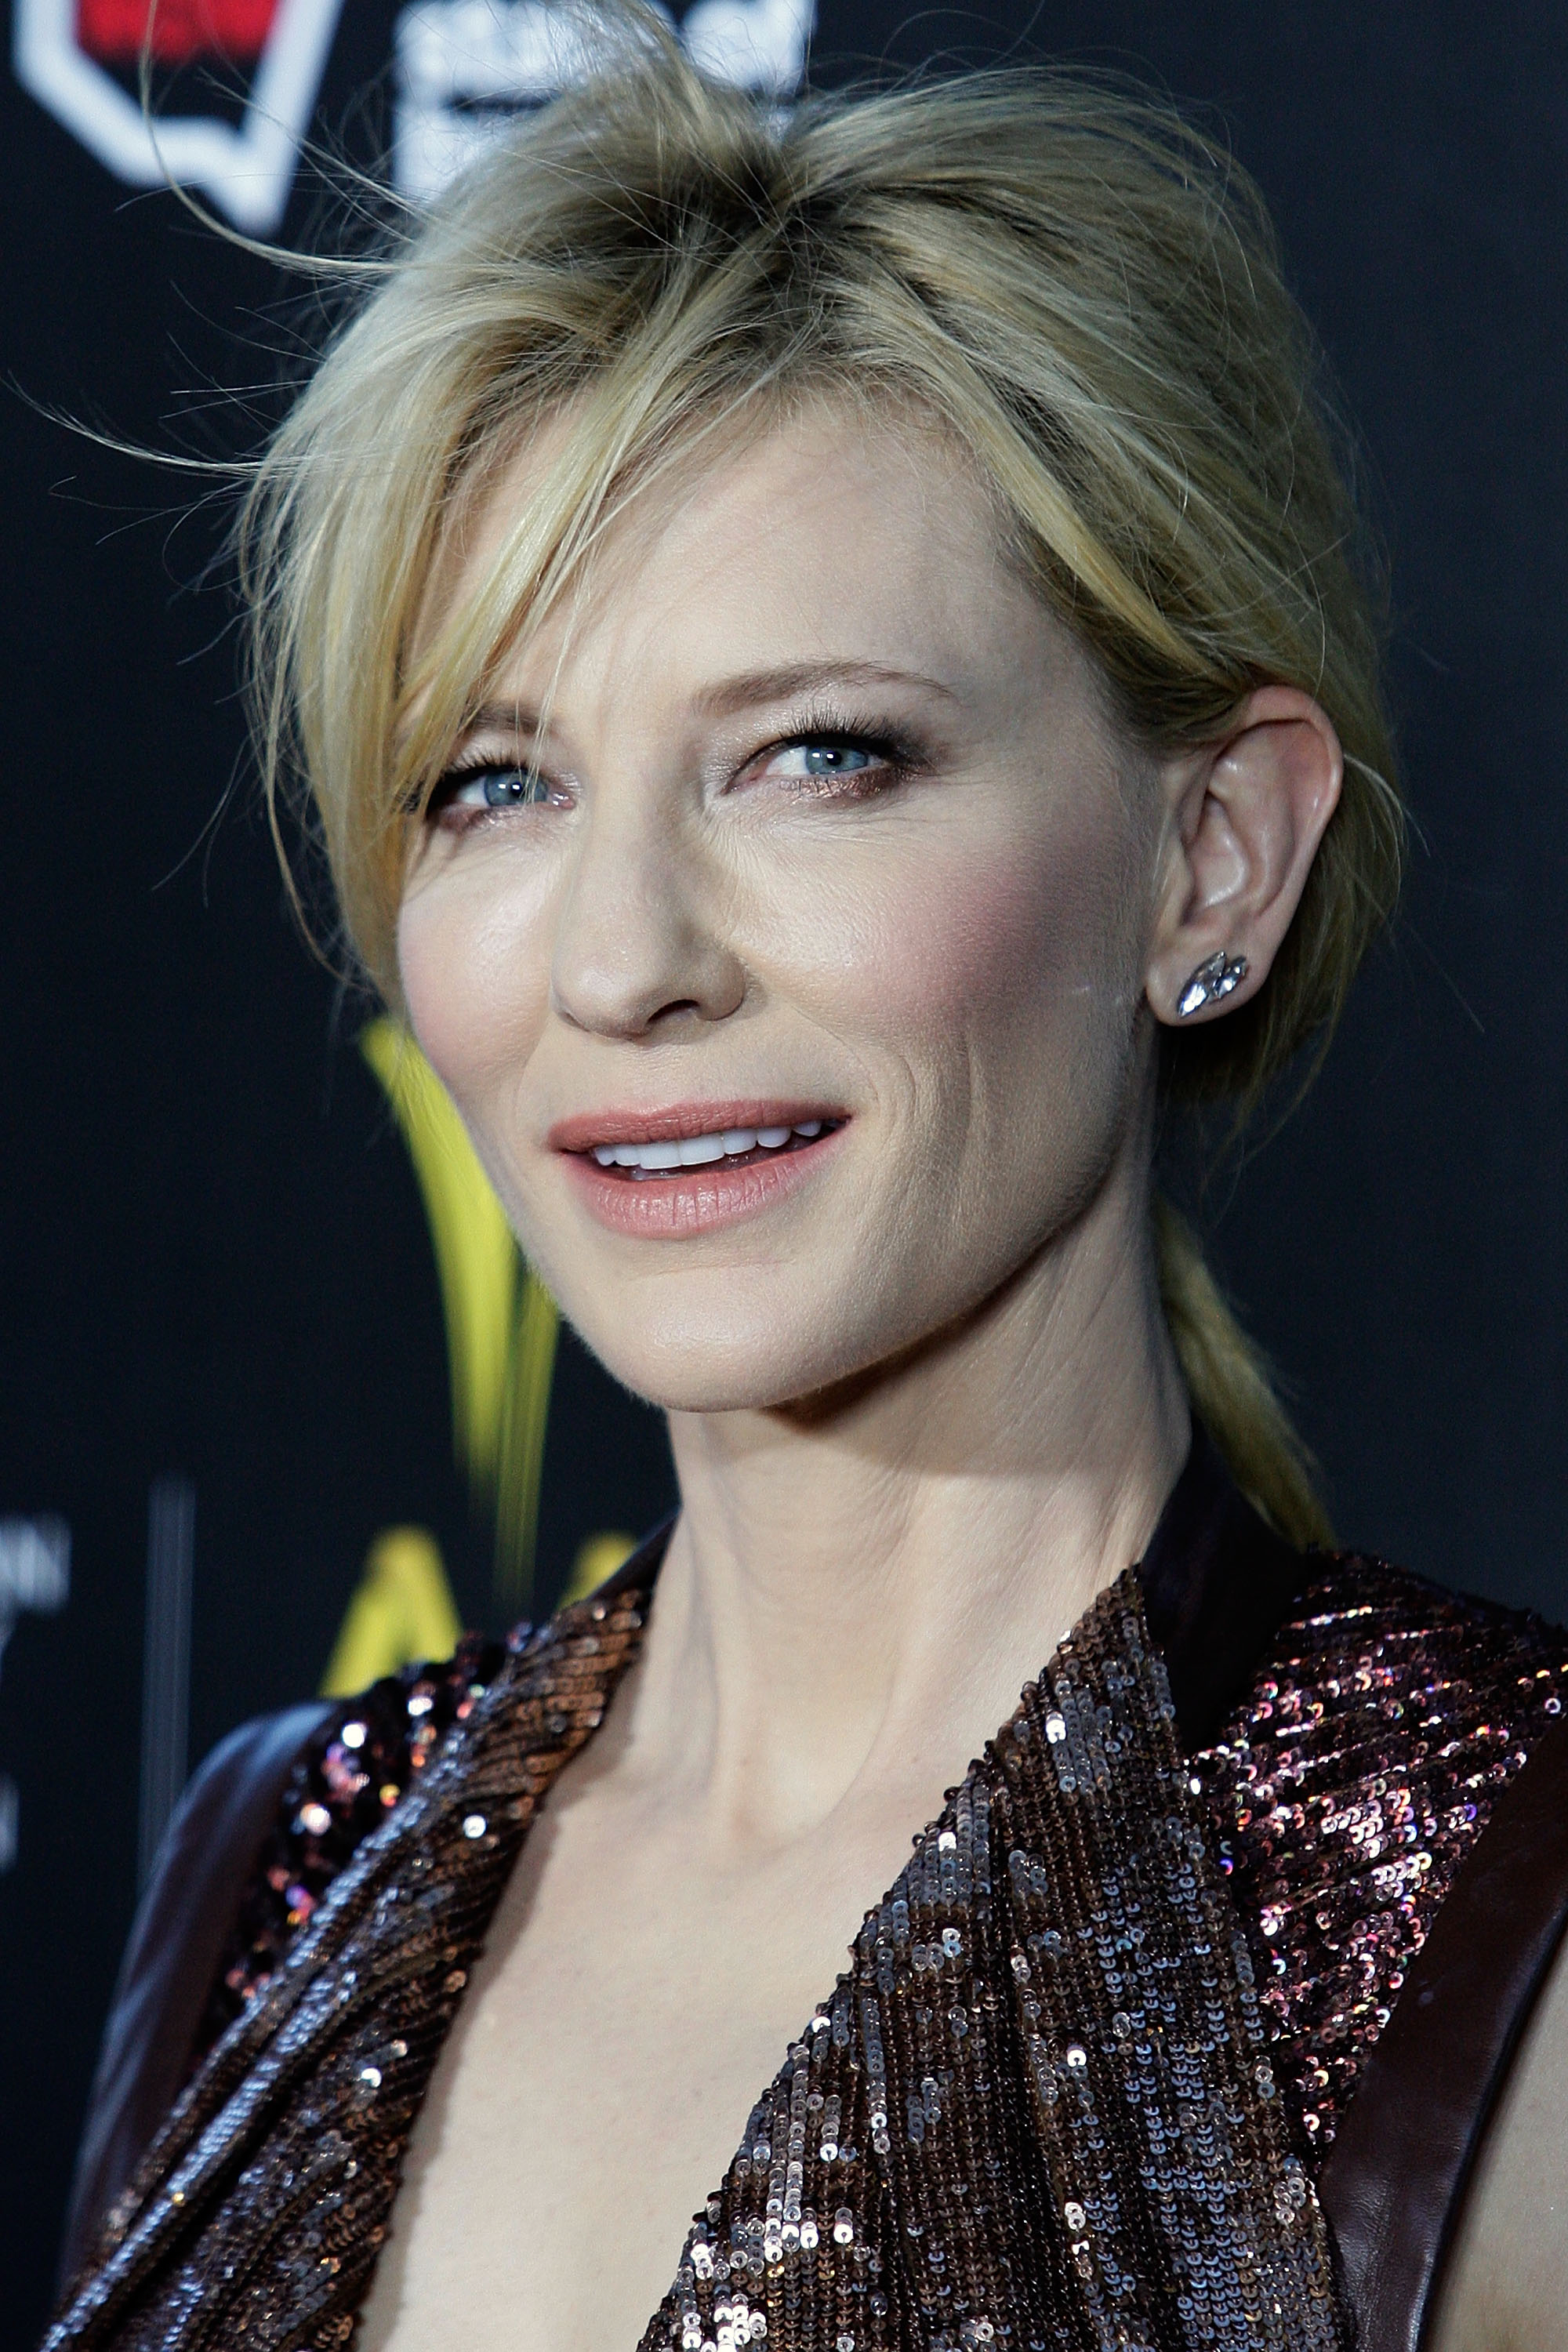 Cate Blanchett Open to Appearing on 'American Horror Story' Cate Blanchett